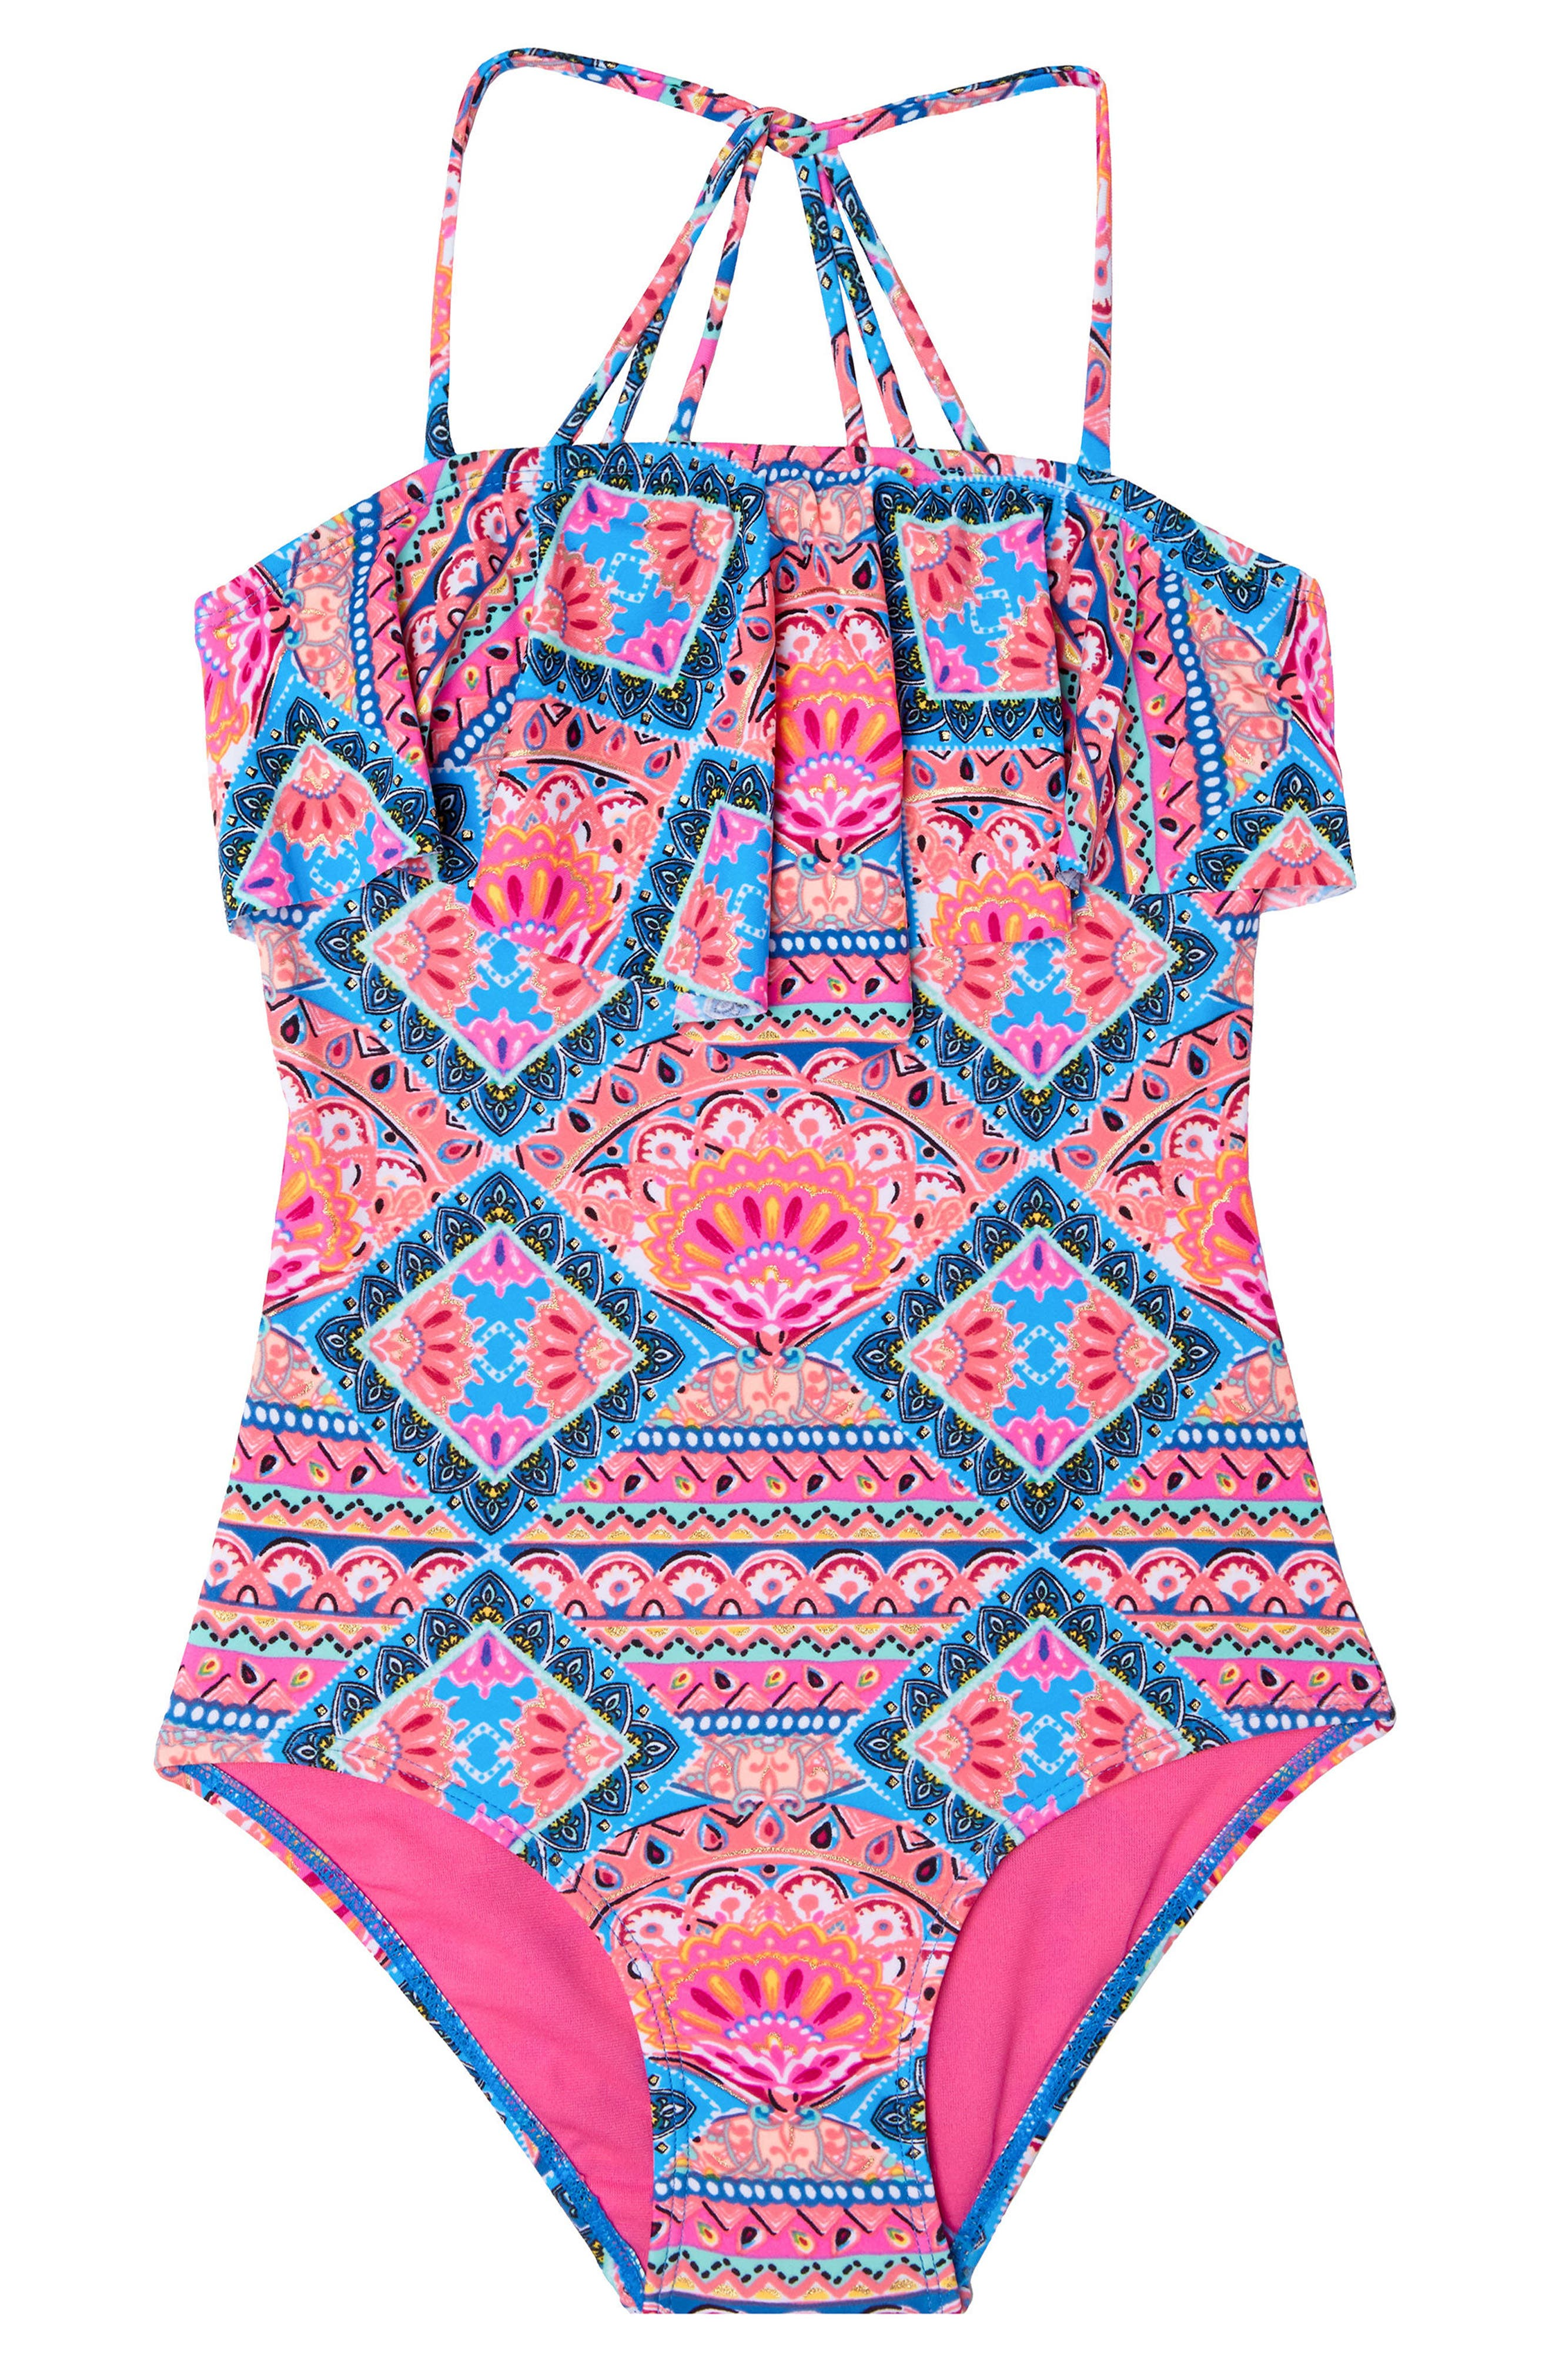 Main Image - Gossip Girl Mixed Print One-Piece Swimsuit (Big Girls)